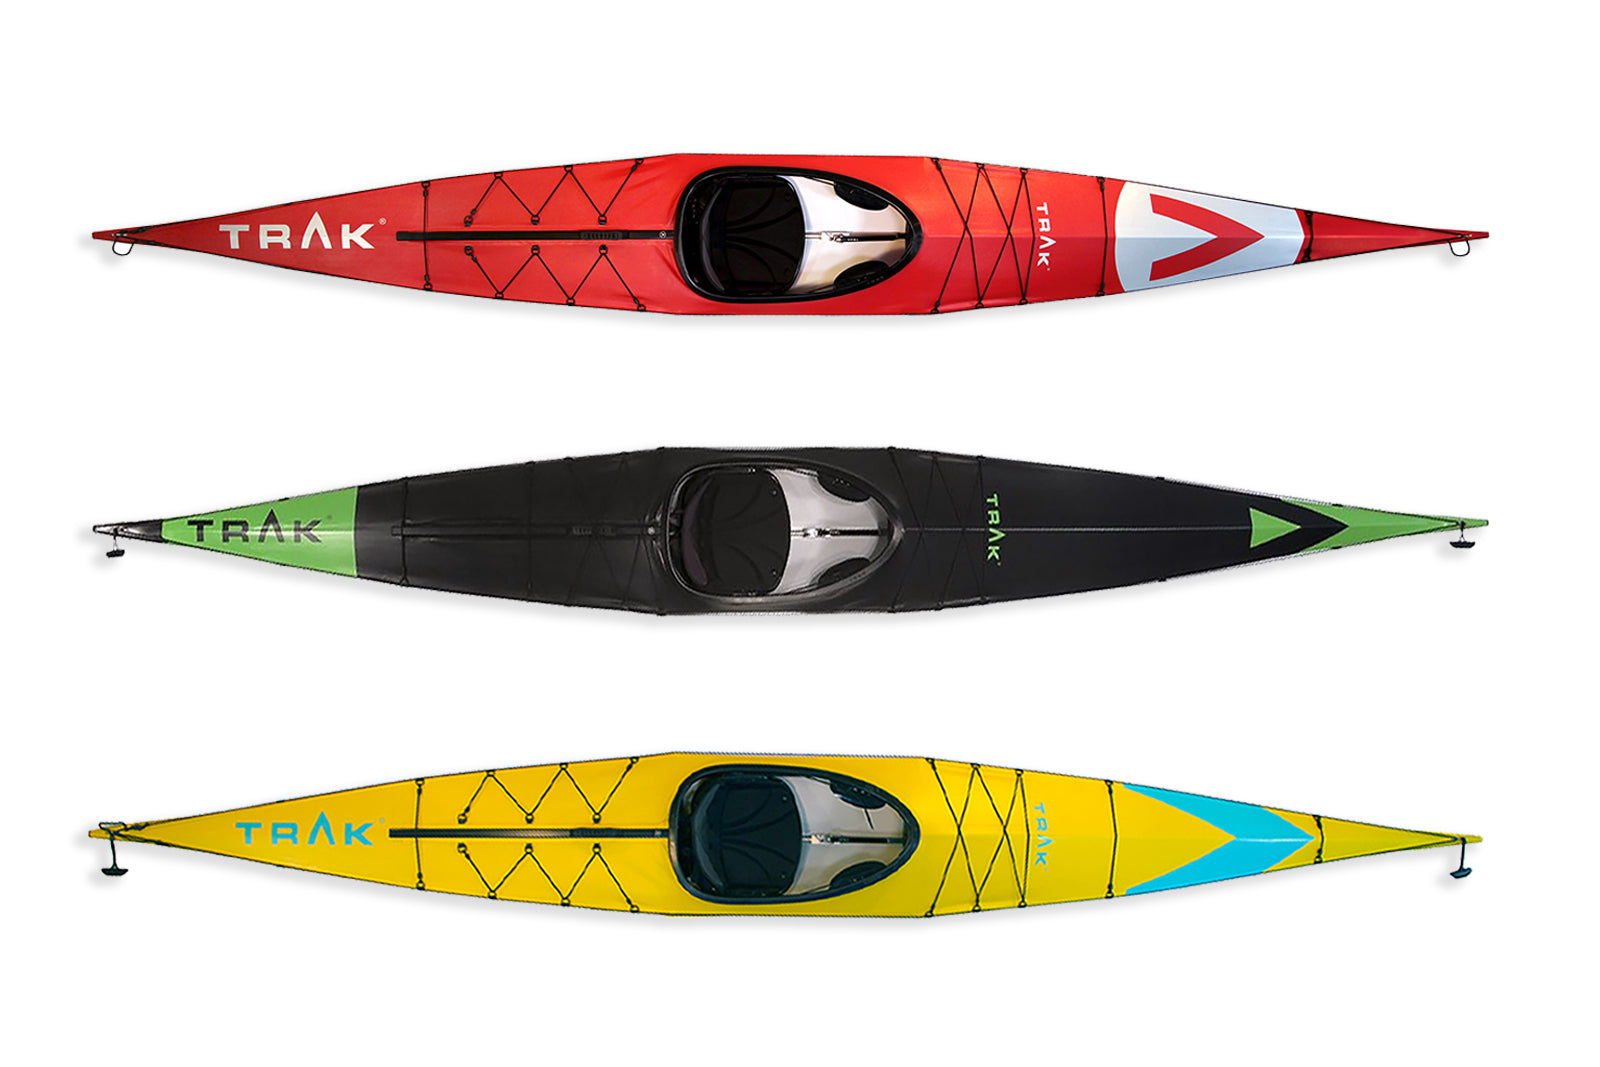 TRAK 2 0 Ultimate Touring Kayak (Deposit or Full Payment)